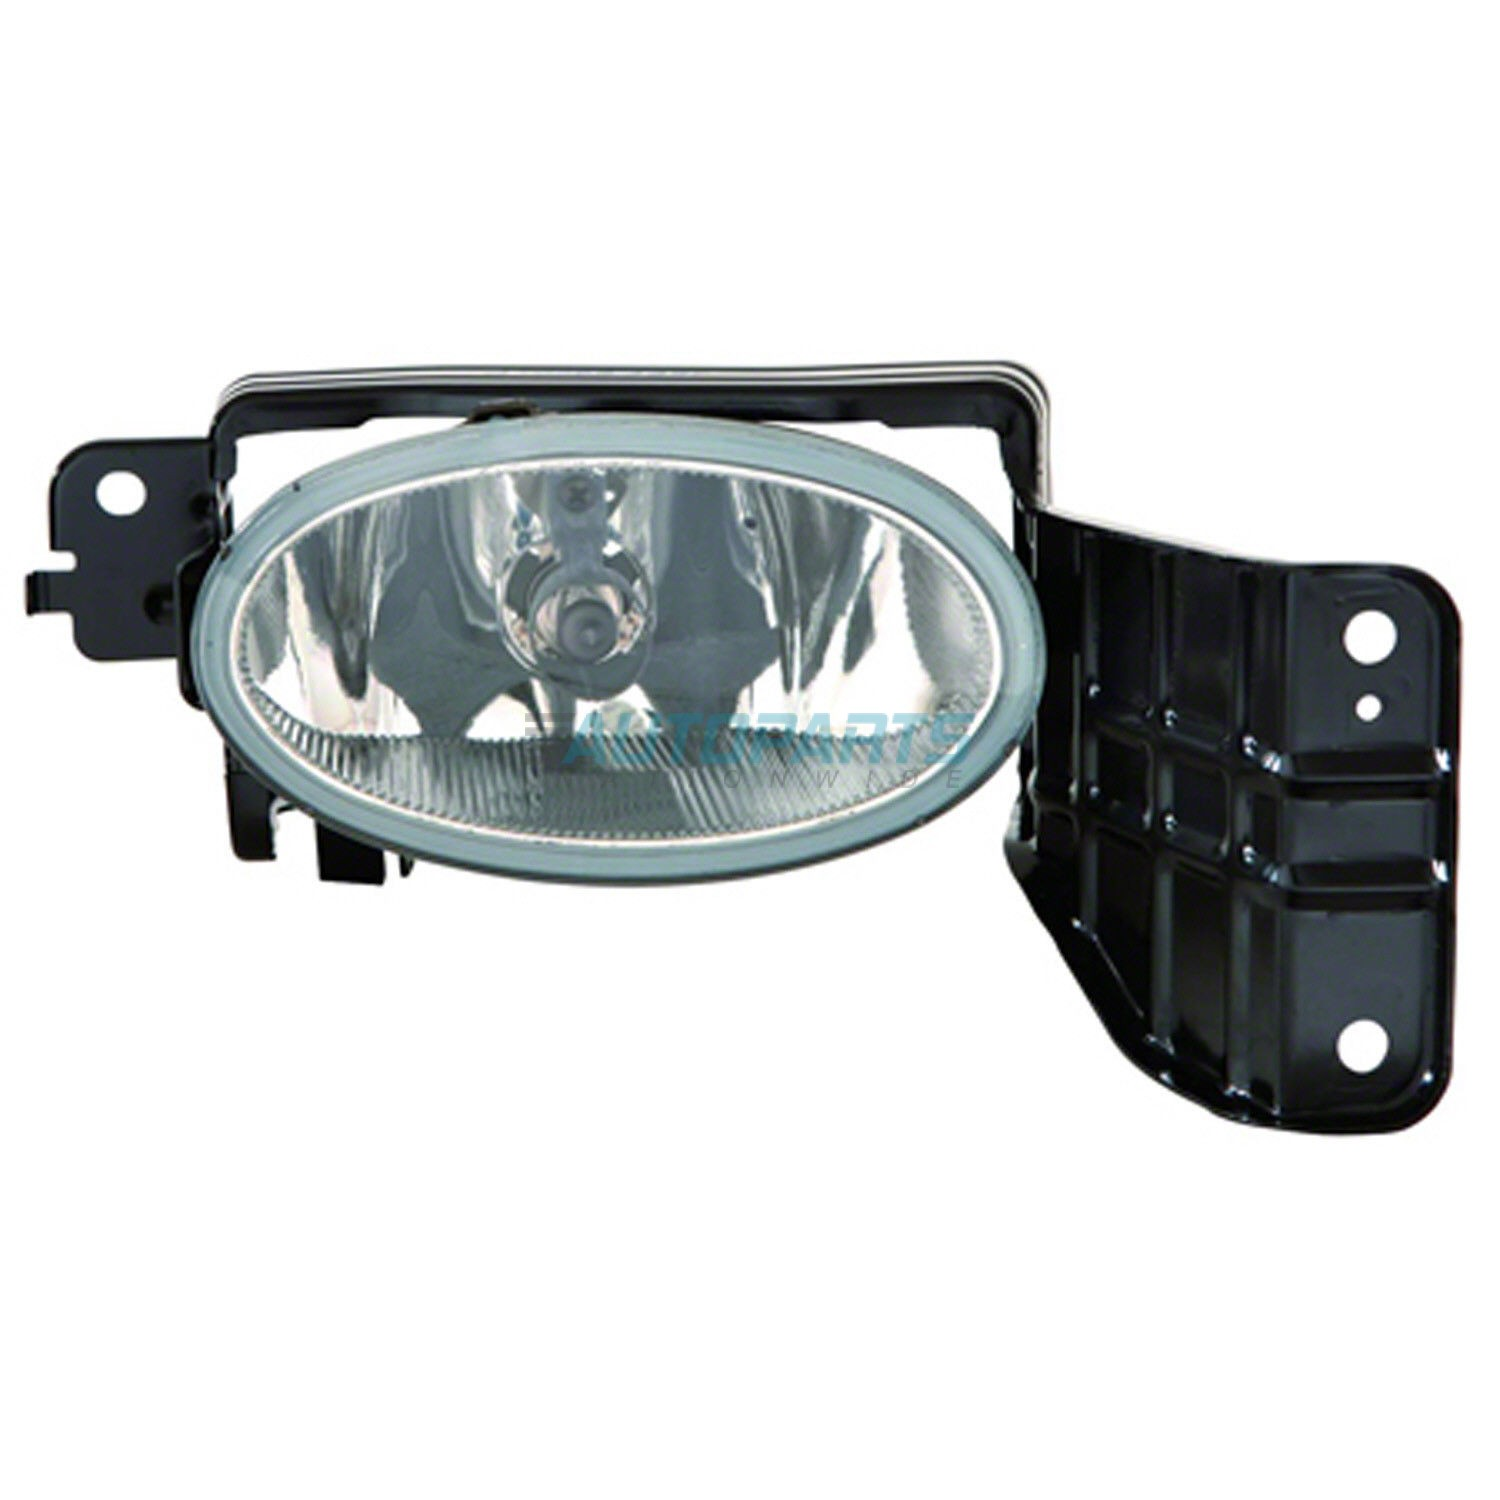 NEW FRONT RIGHT FOG LIGHT ASSEMBLY FITS 2010 HONDA ACCORD